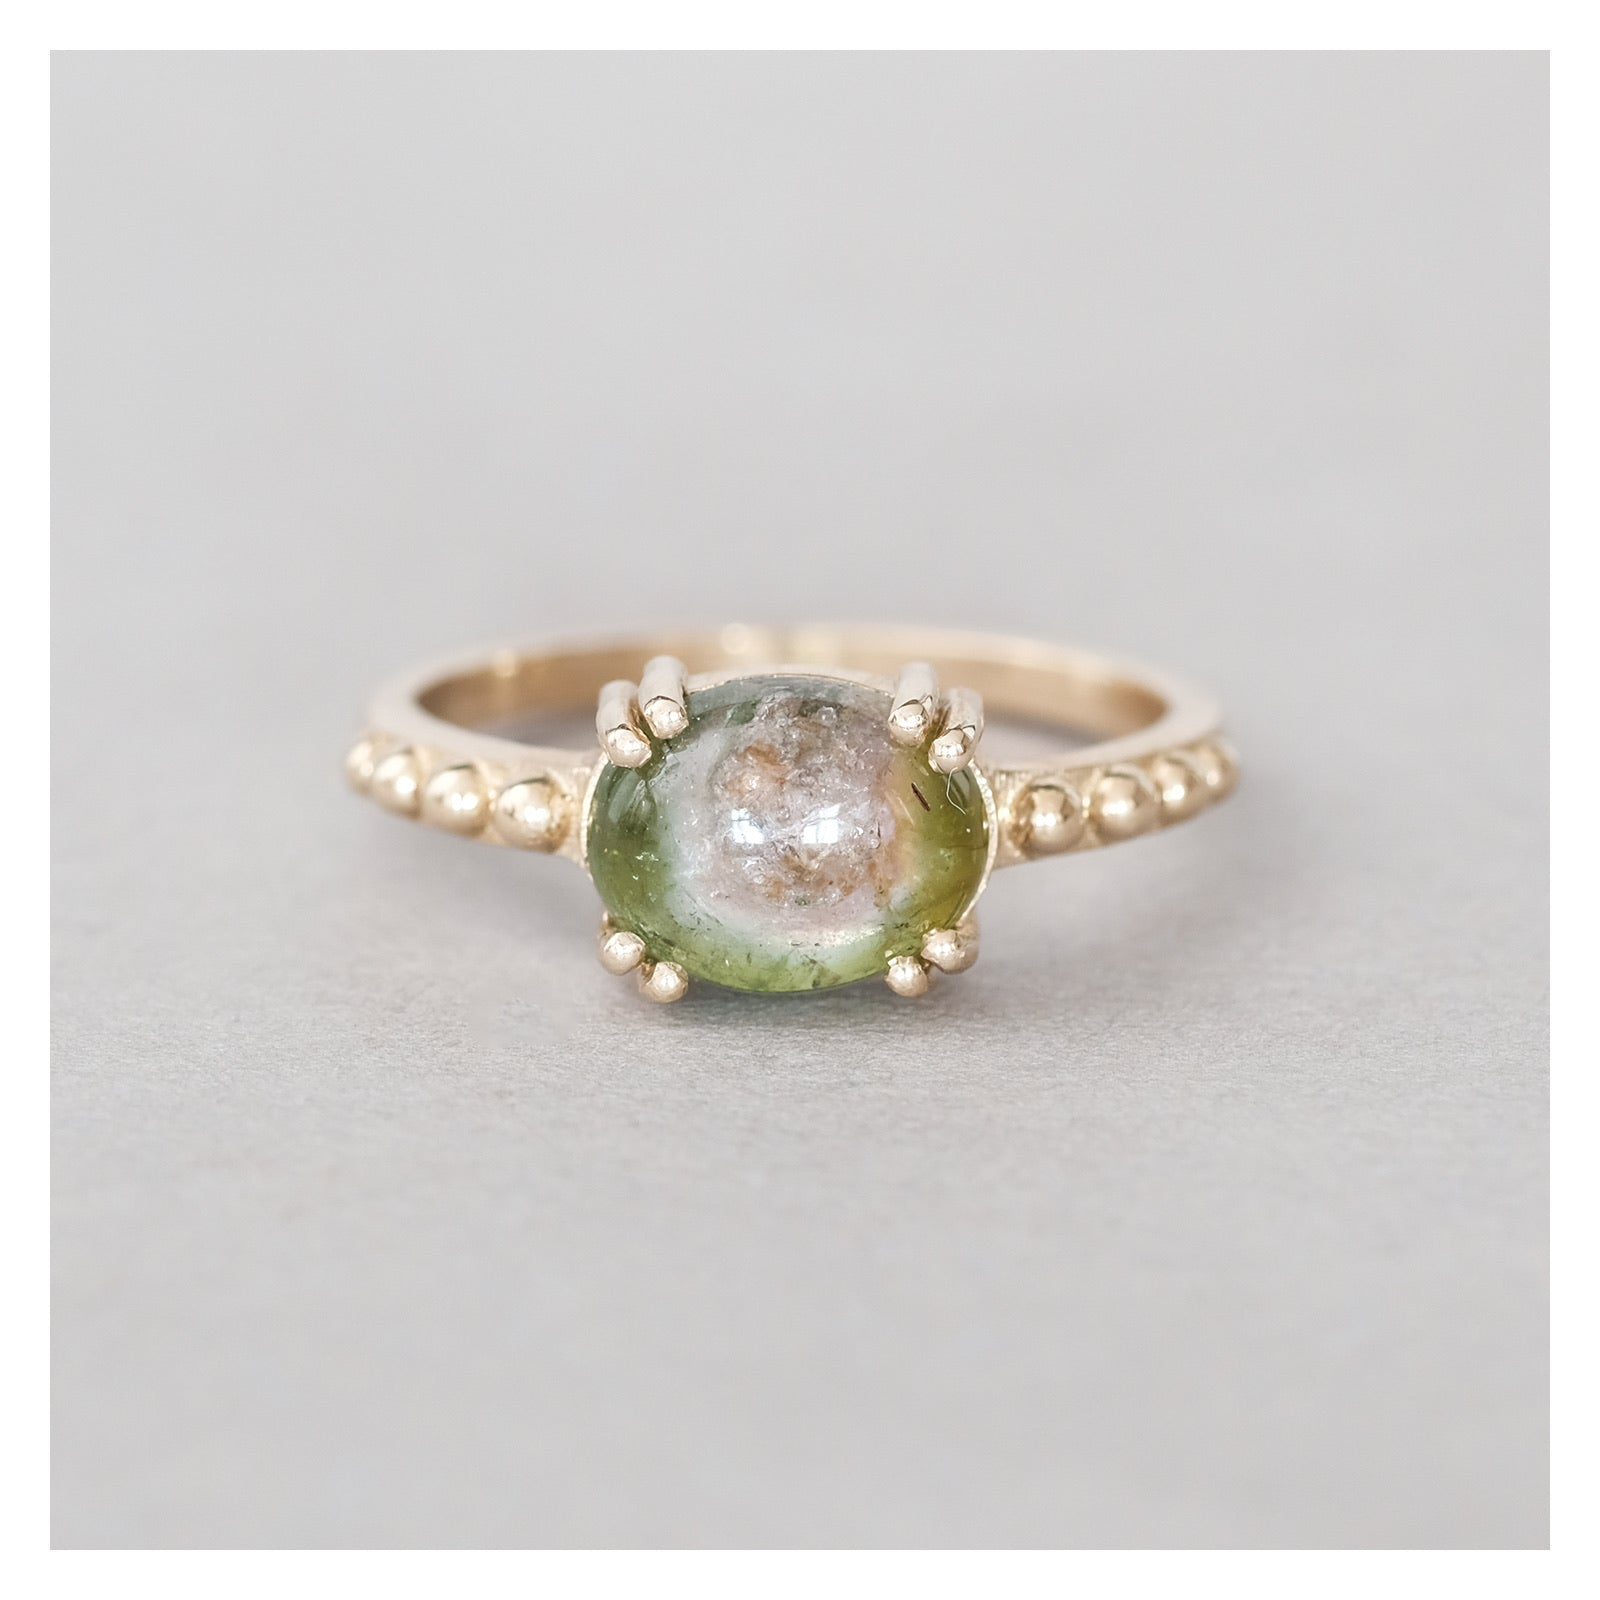 dale watermelon tourmaline ring #1